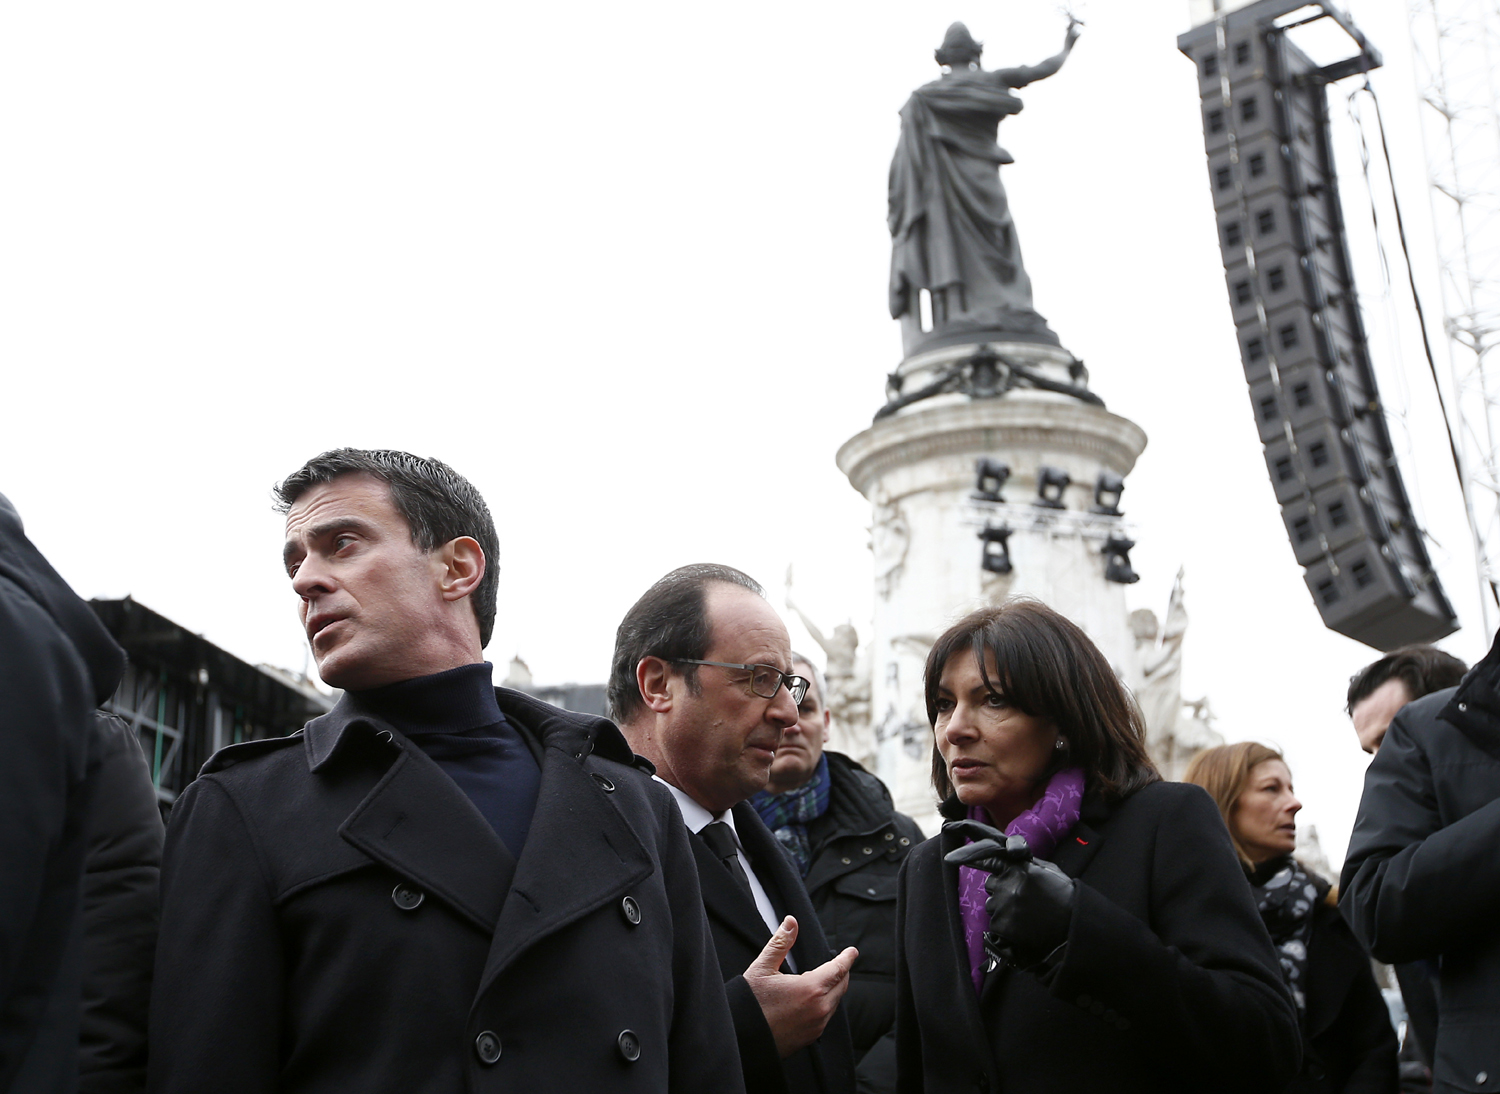 (From L) French Prime minister Manuel Valls, French President Francois Hollande and French Paris' mayor Anne Hidalgo attend a remembrance rally at Place de la Republique (Republic square) on January 10, 2016 to mark a year since 1.6 million people thronged the French capital in a show of unity after attacks on the Charlie Hebdo newspaper and a Jewish supermarket. Just as it was last year, the vast Place de la Republique will be the focus of the gathering as people reiterate their support for freedom of expression and remember the other victims of what would become a year of jihadist outrages in France, culminating in the November 13 coordinated shootings and suicide bombings that killed 130 people and were claimed by the Islamic State (IS) group. / AFP / YOAN VALAT